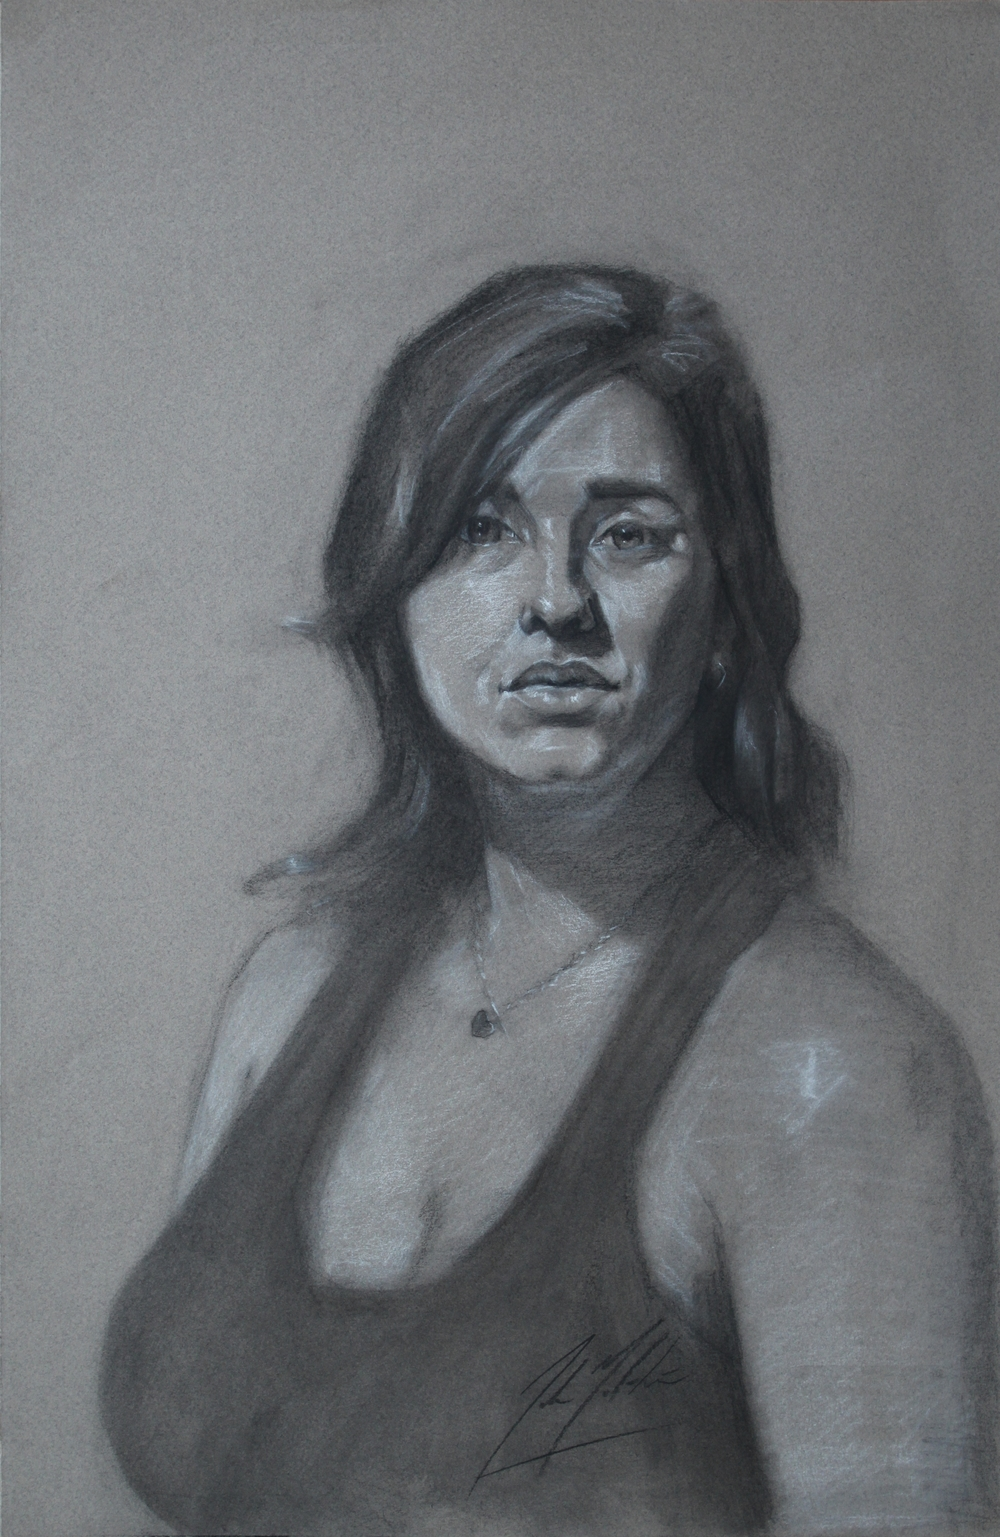 Erica, 2014, charcoal on paper, 18 x 12 inches